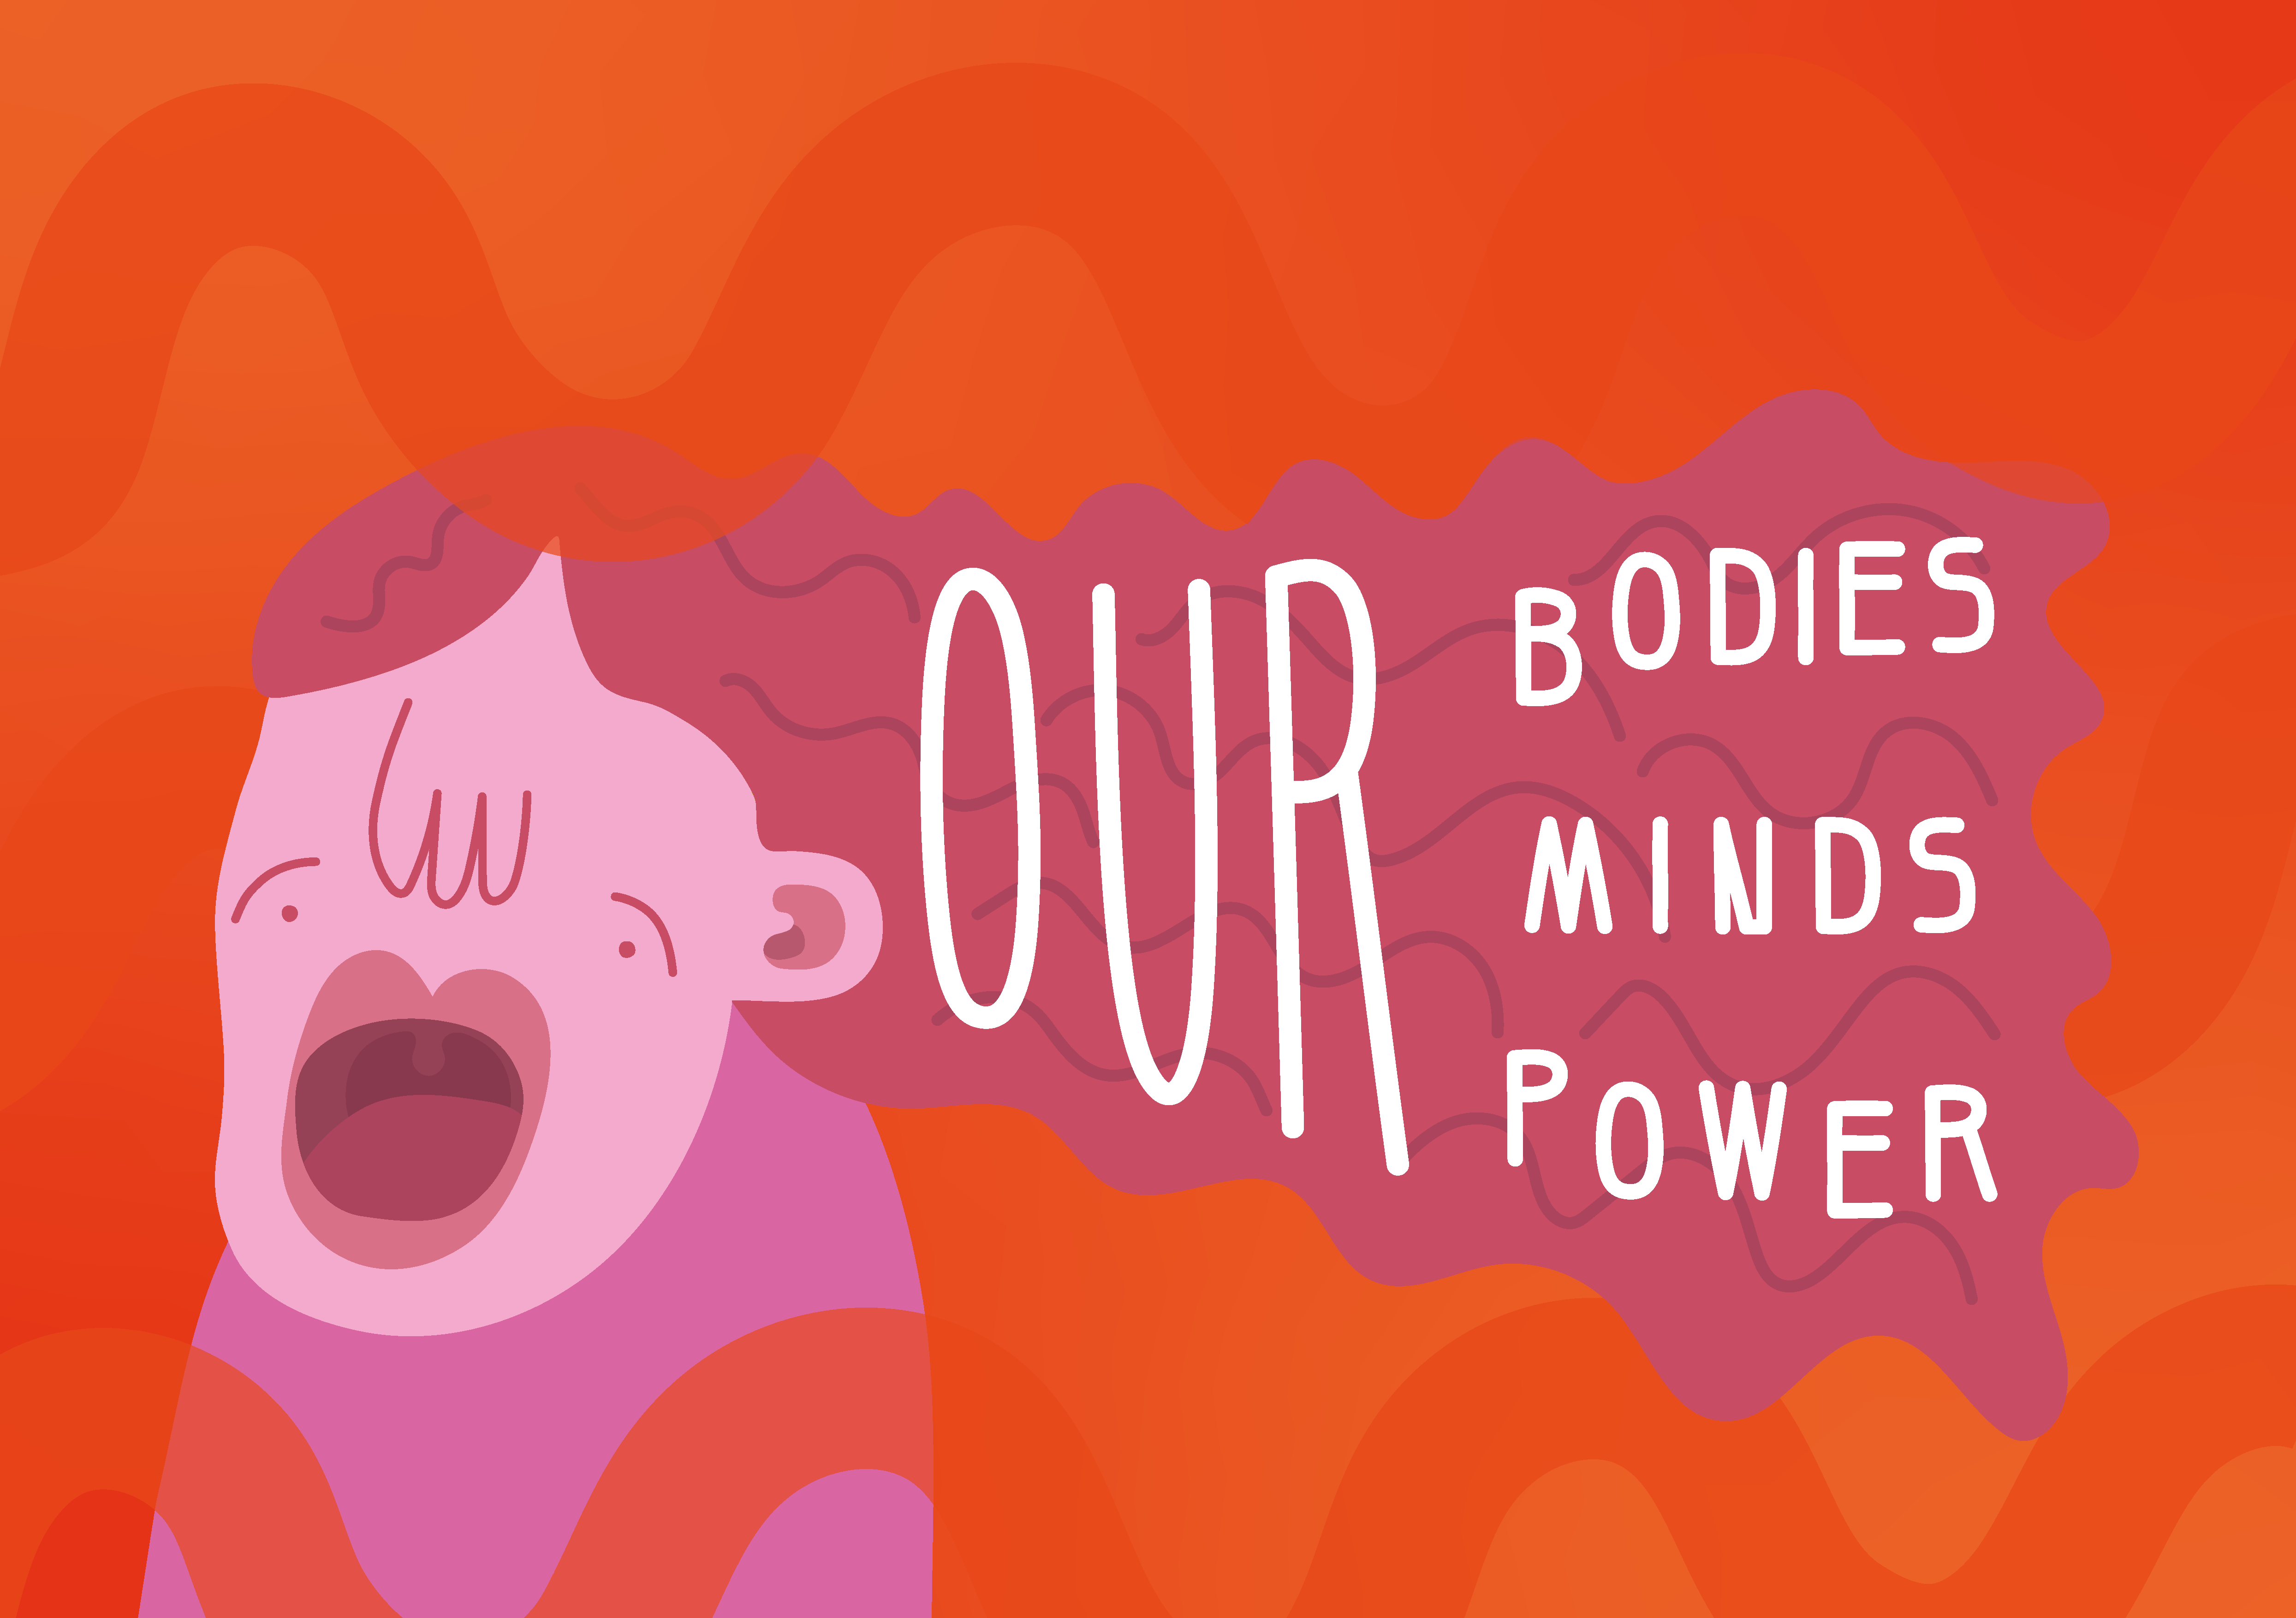 Our Bodies, Minds, Power main image